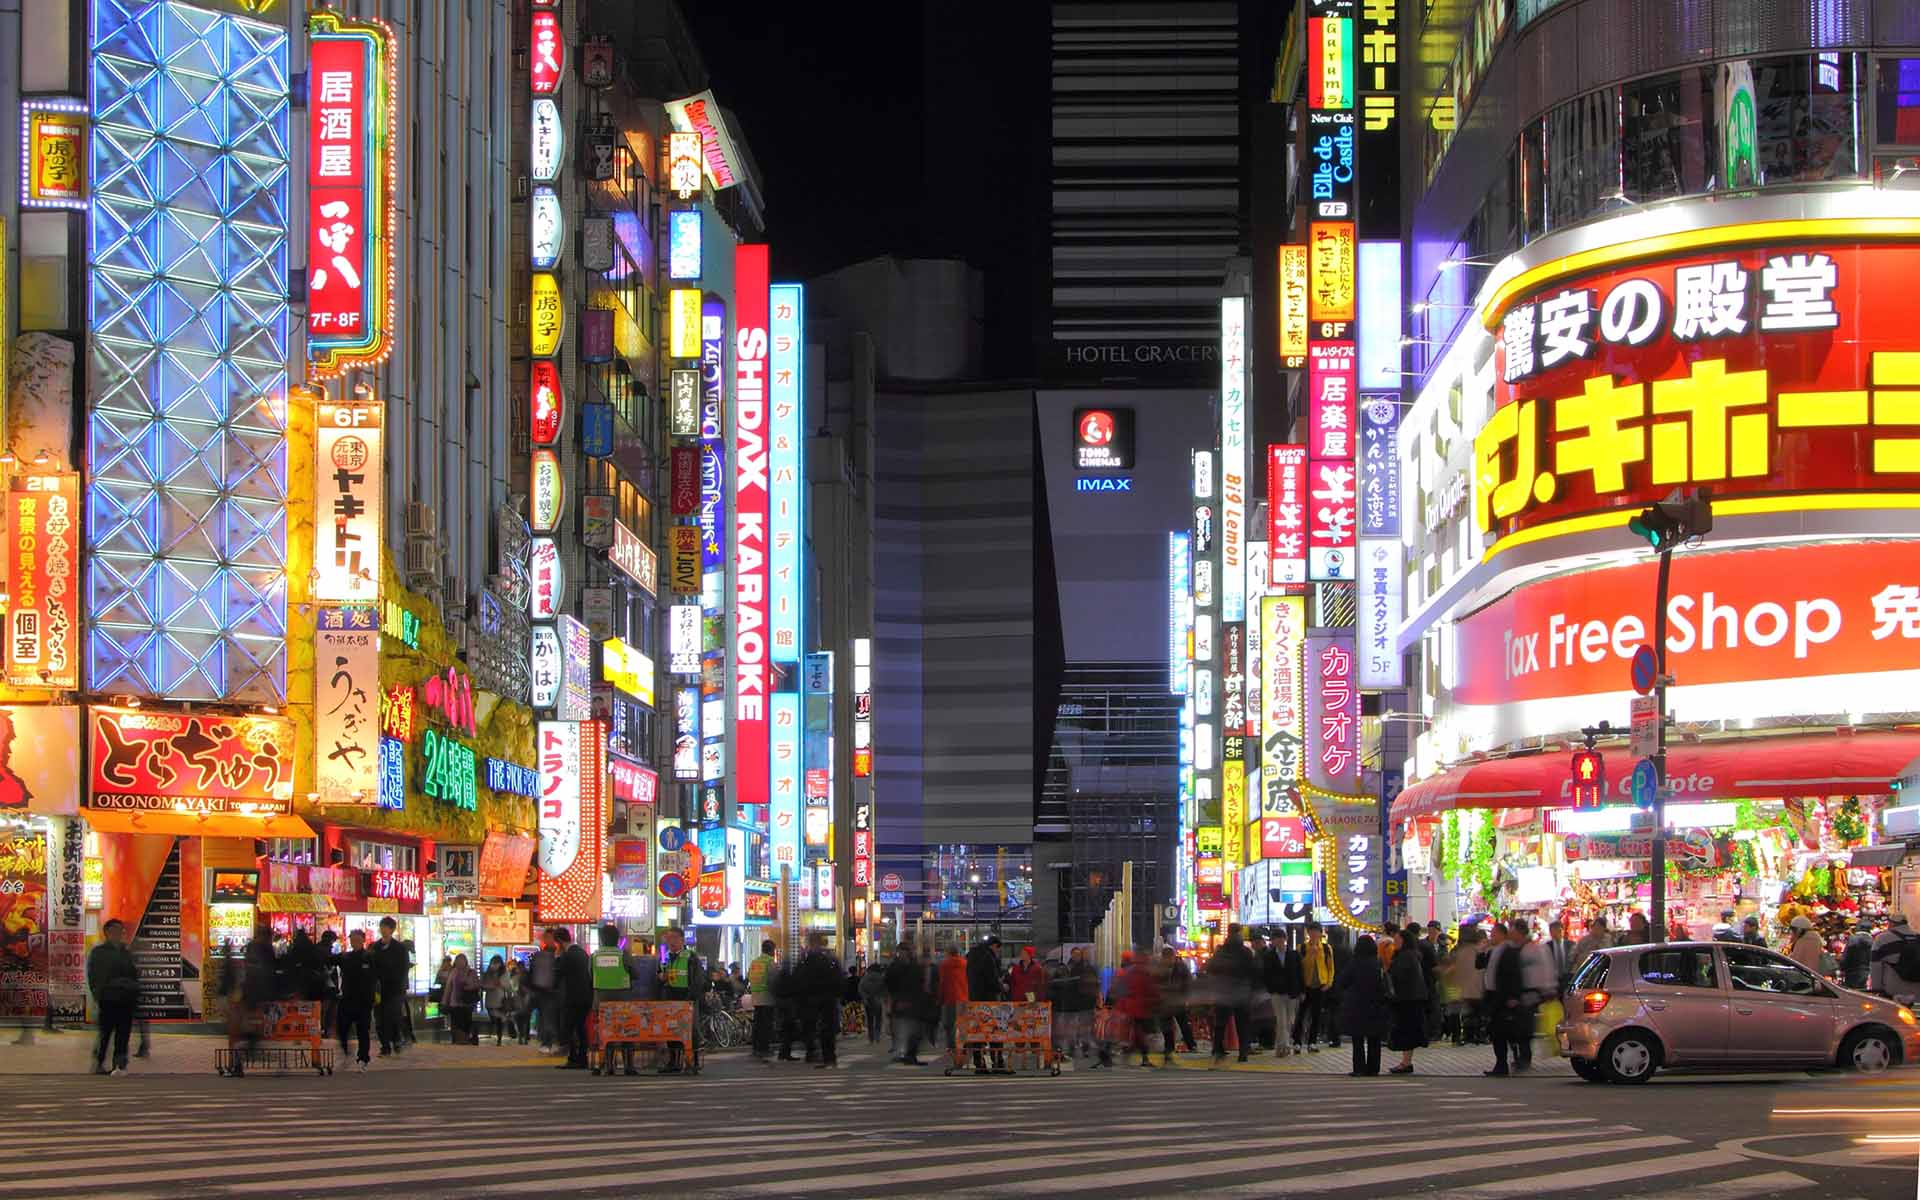 Crypto Exchange Giant Coinbase Announces Opening of Japan Office